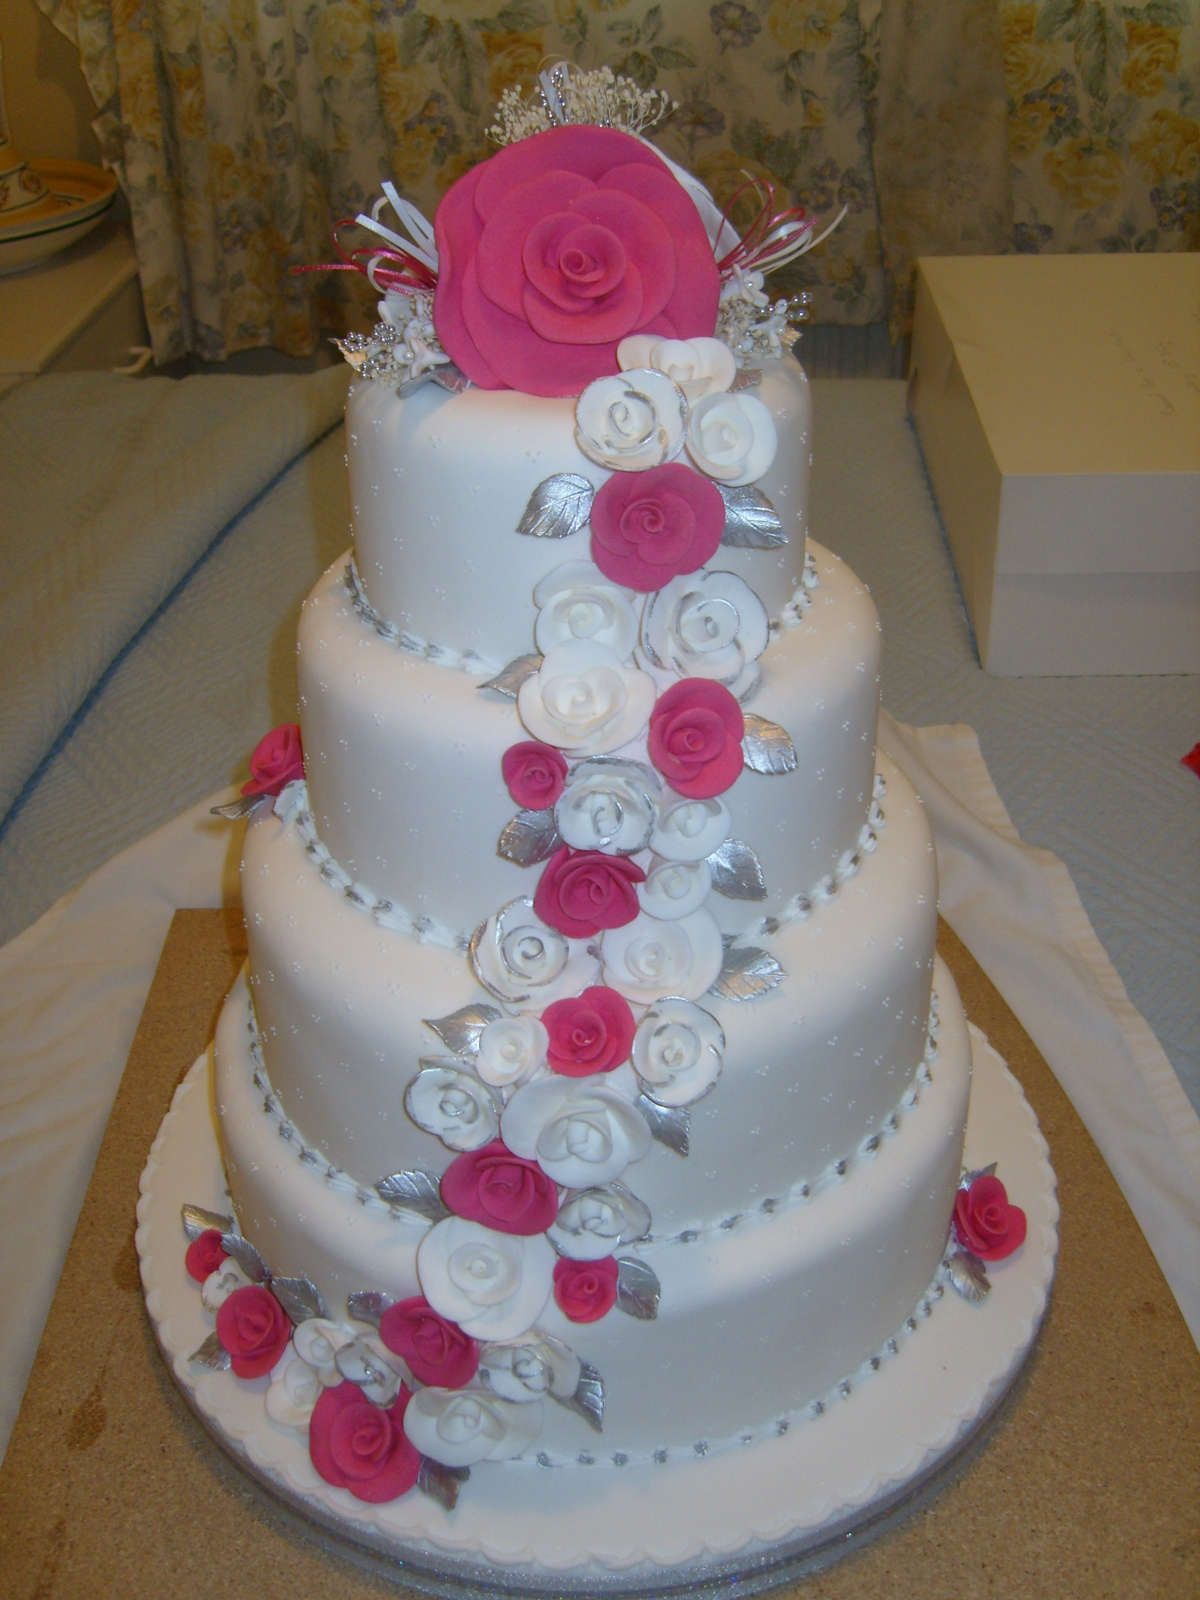 Cakes images wedding cake hd wallpaper and background photos - Cake Boss Wedding Wallpaper Cake Boss Wedding Cakes Photos Hd